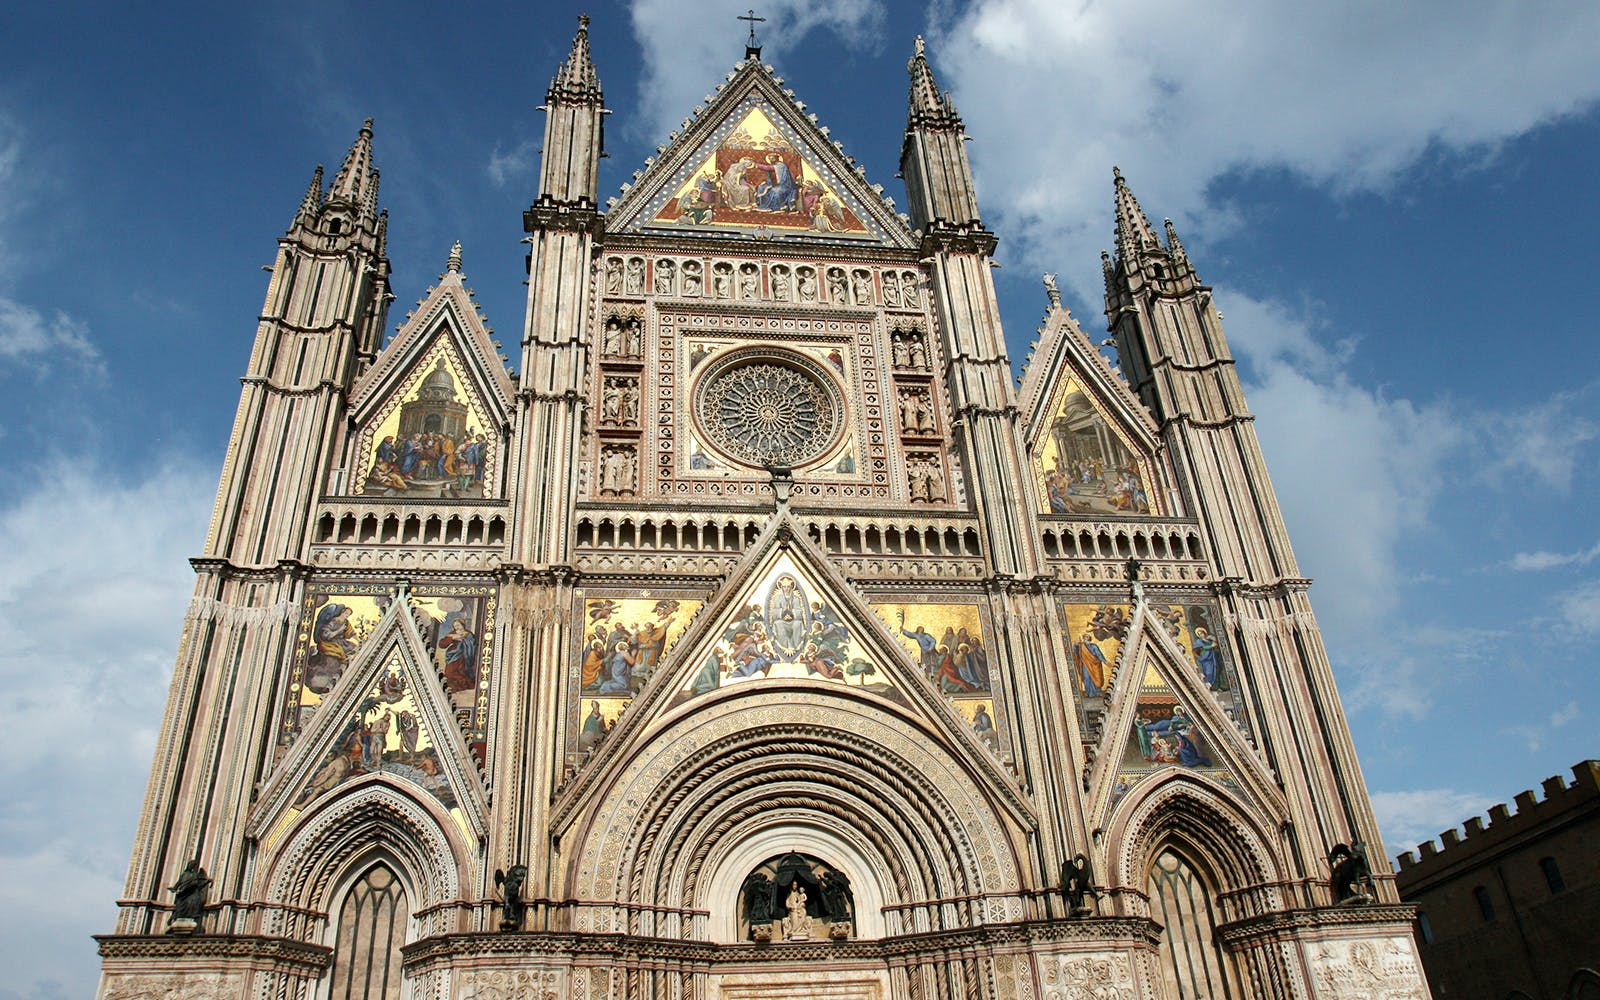 assisi and orvieto cultural heritage tour from rome-2